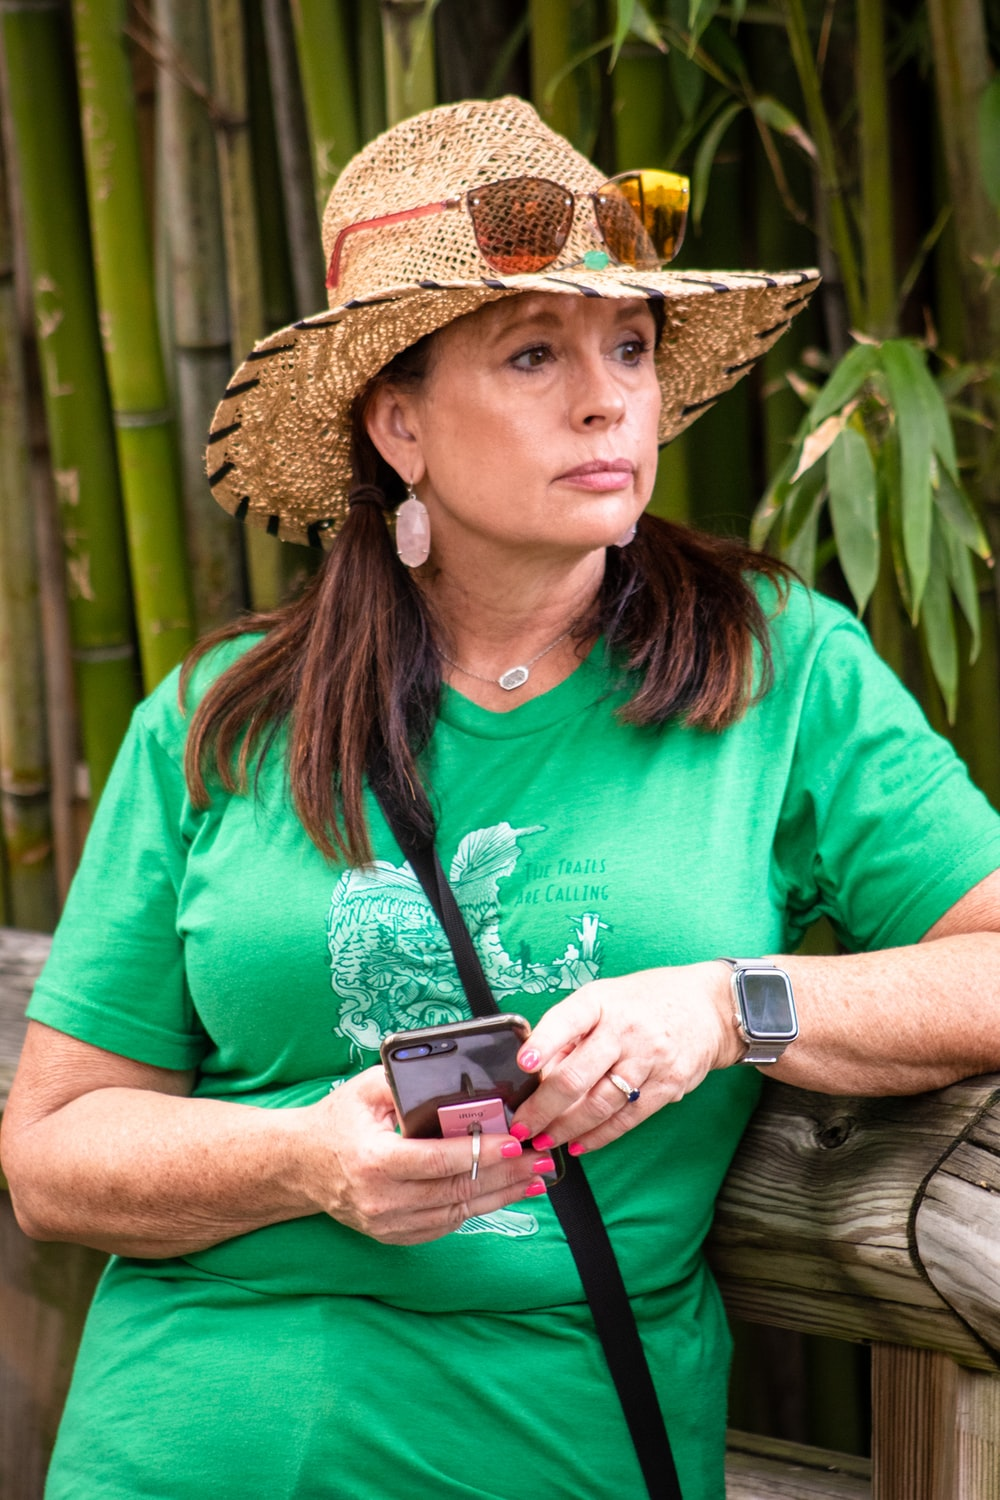 woman green shirt and hat